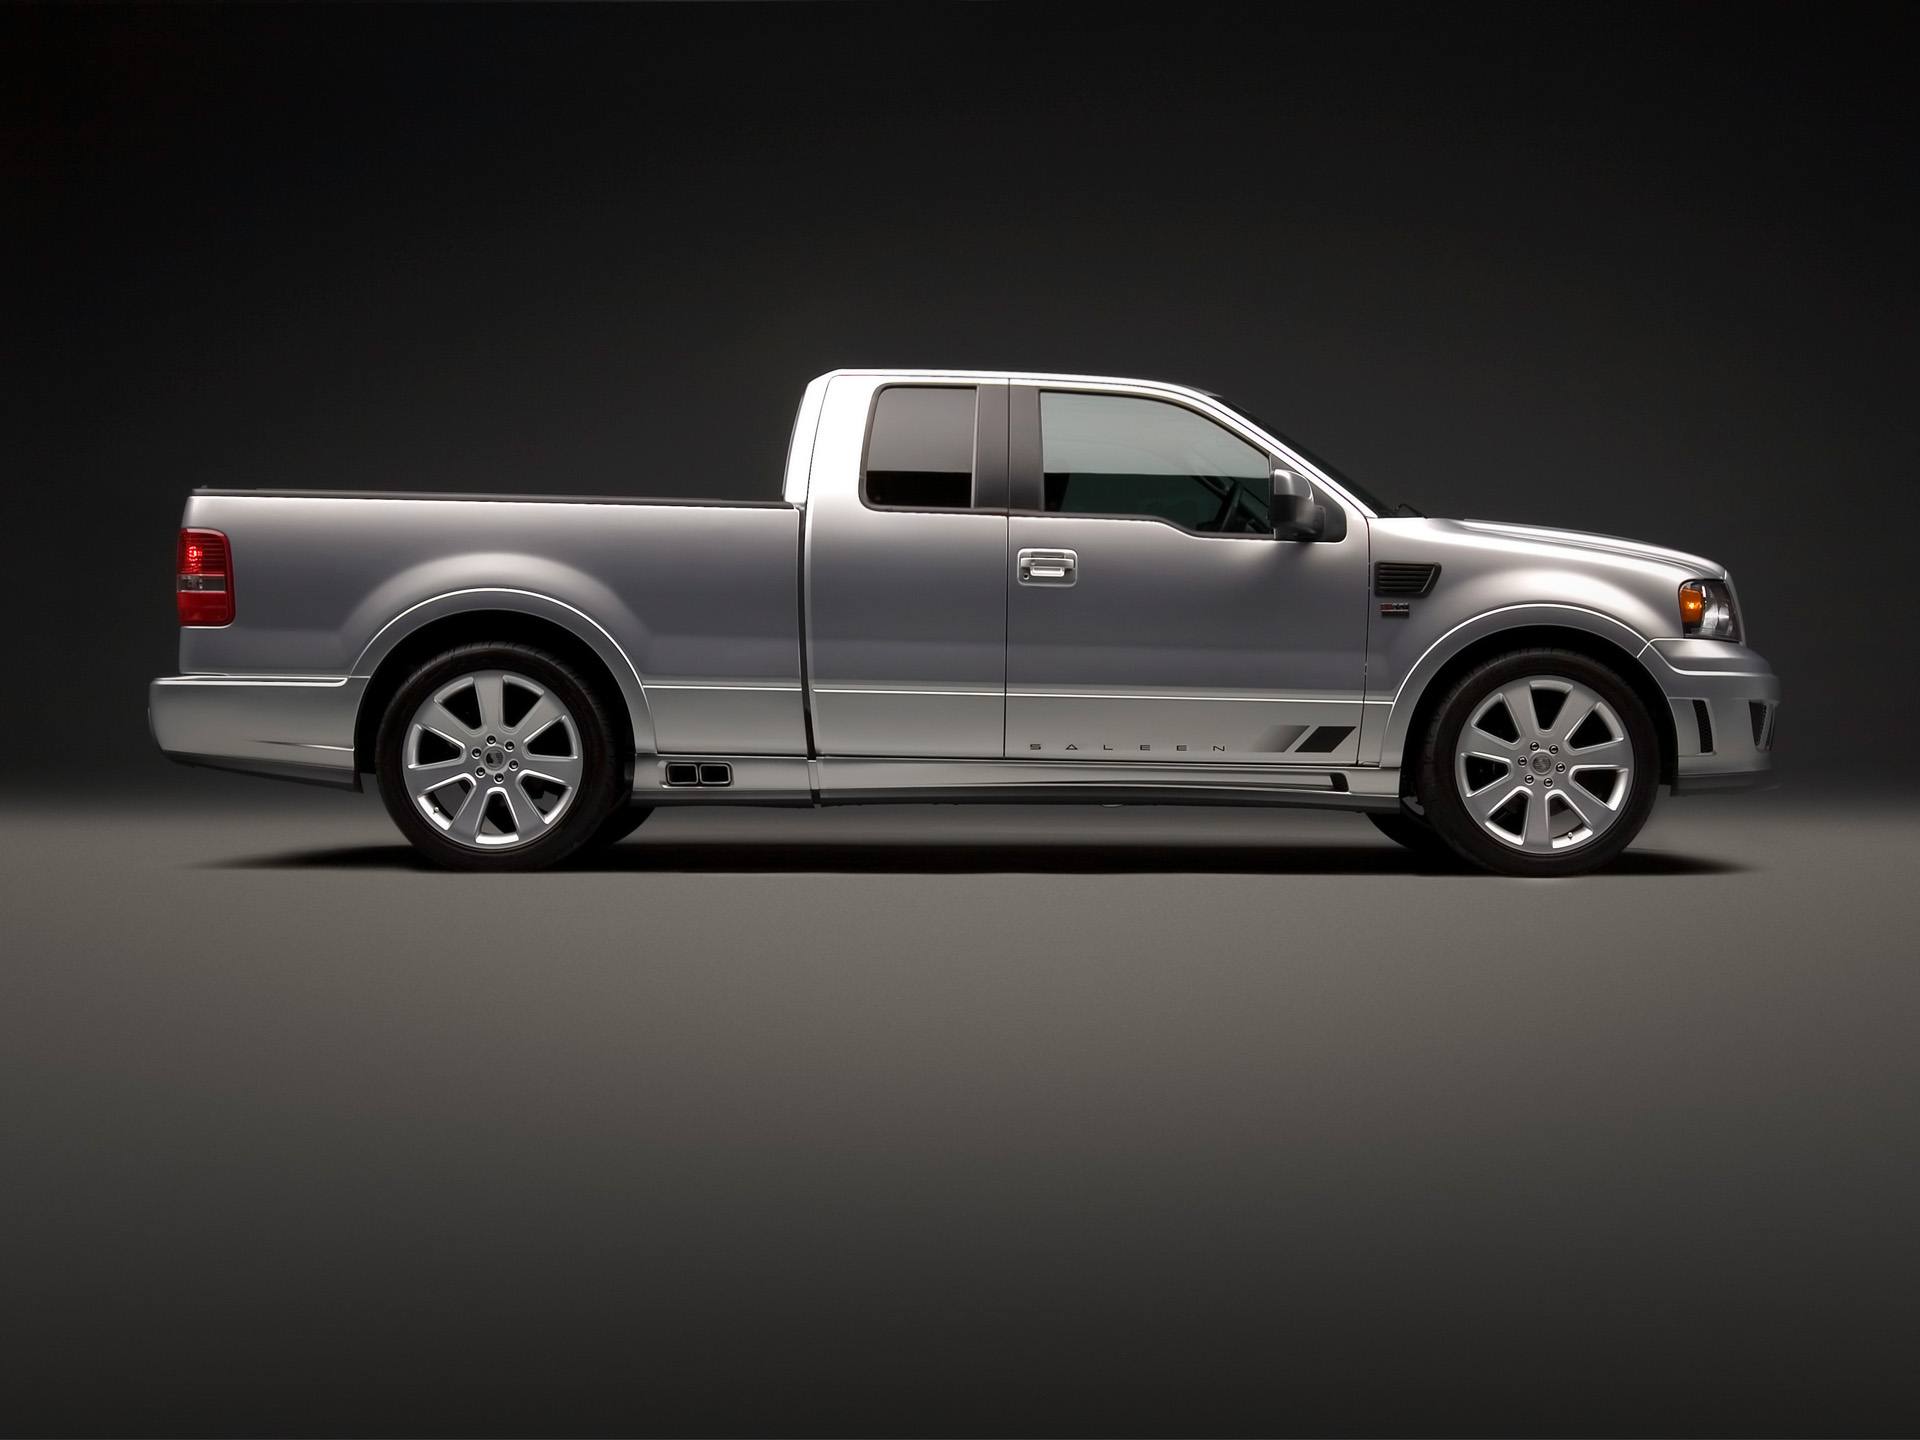 2007 saleen s331 sport truck ford f 150 pickup muscle supertruck g wallpaper 1920x1440 113945 wallpaperup